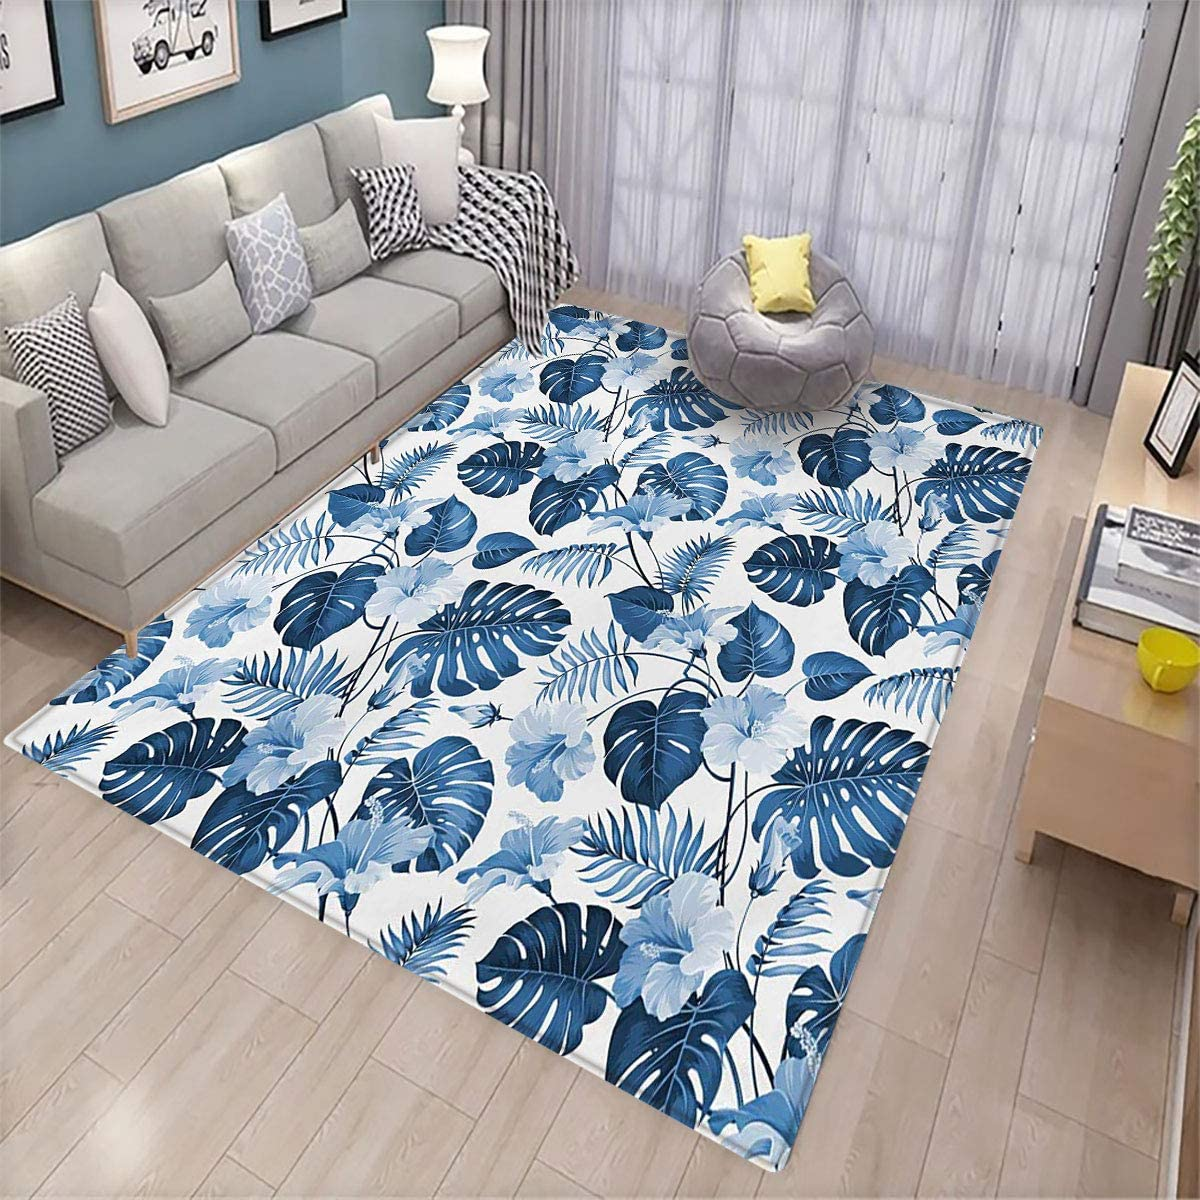 Leaf Pet Floor mat Palm and Mango Tree Branch and Hawaiian Hibiscus Flower Image Indoor Living Room Floor mat 6.5'x9.8' Pale Blue Turquoise and Dark Blue